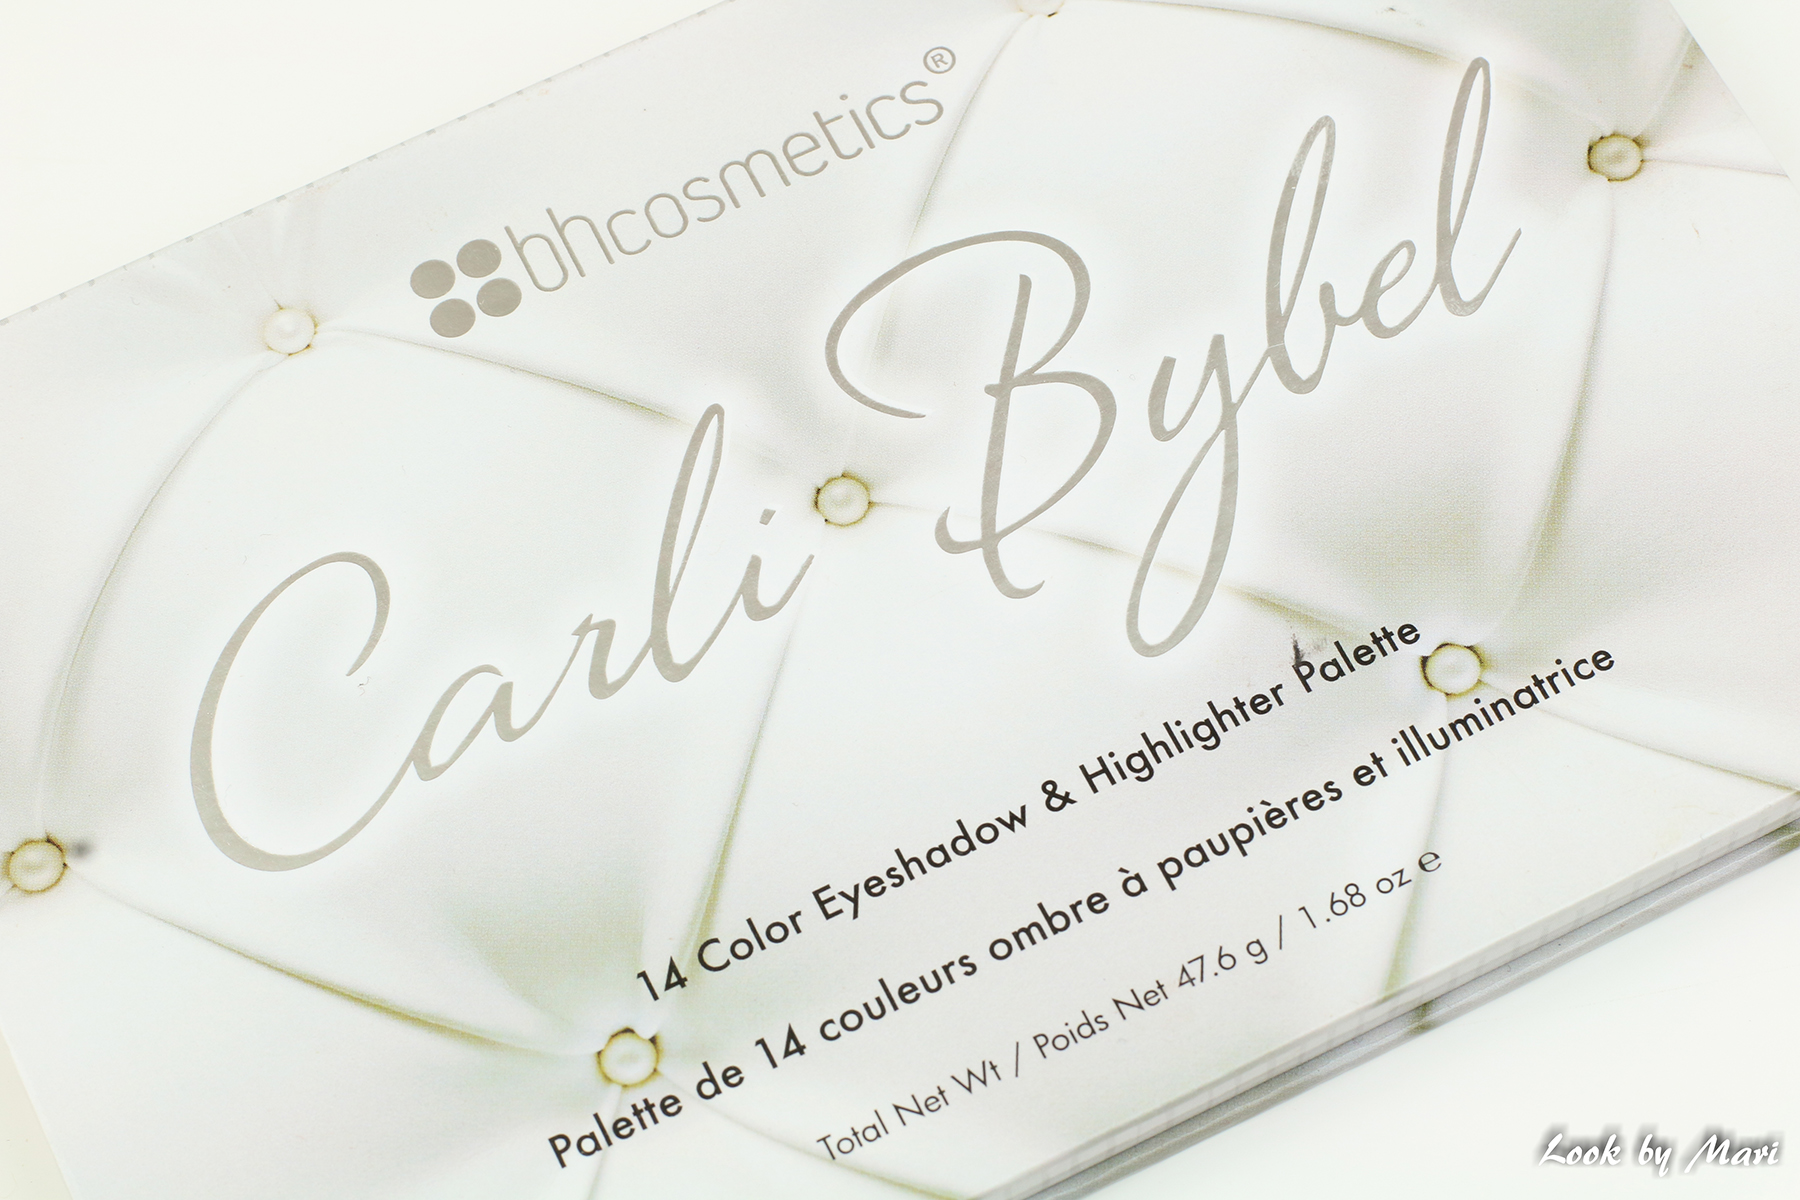 3 bh cosmetics x carli bybel 14 colors eyeshadow and highlighting palette from finland